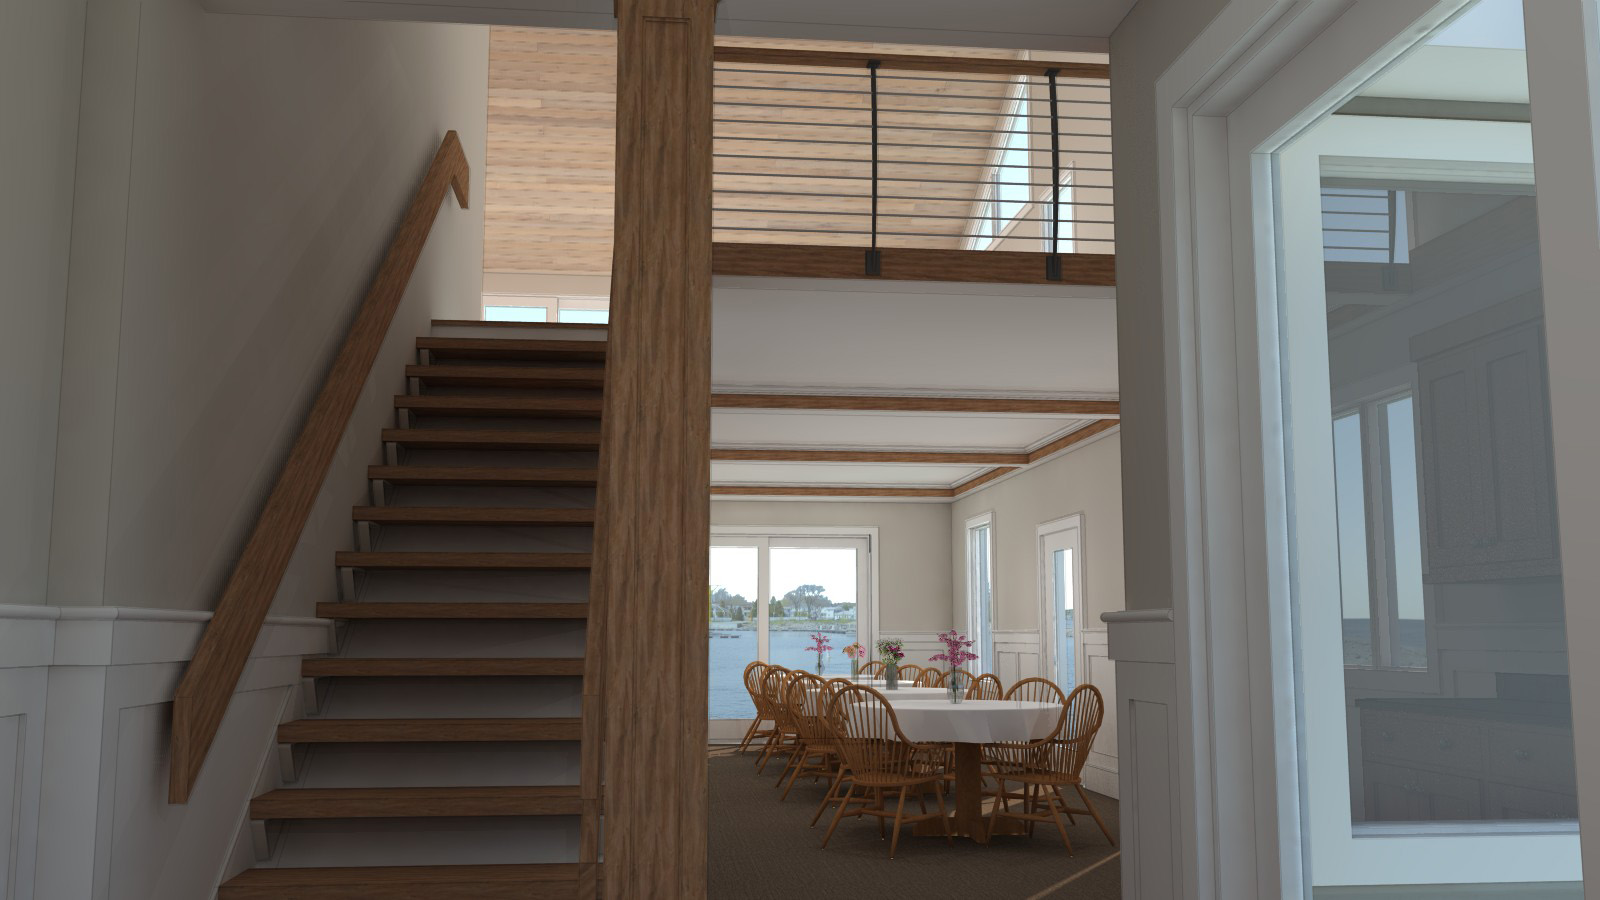 Rendering of new Balcony